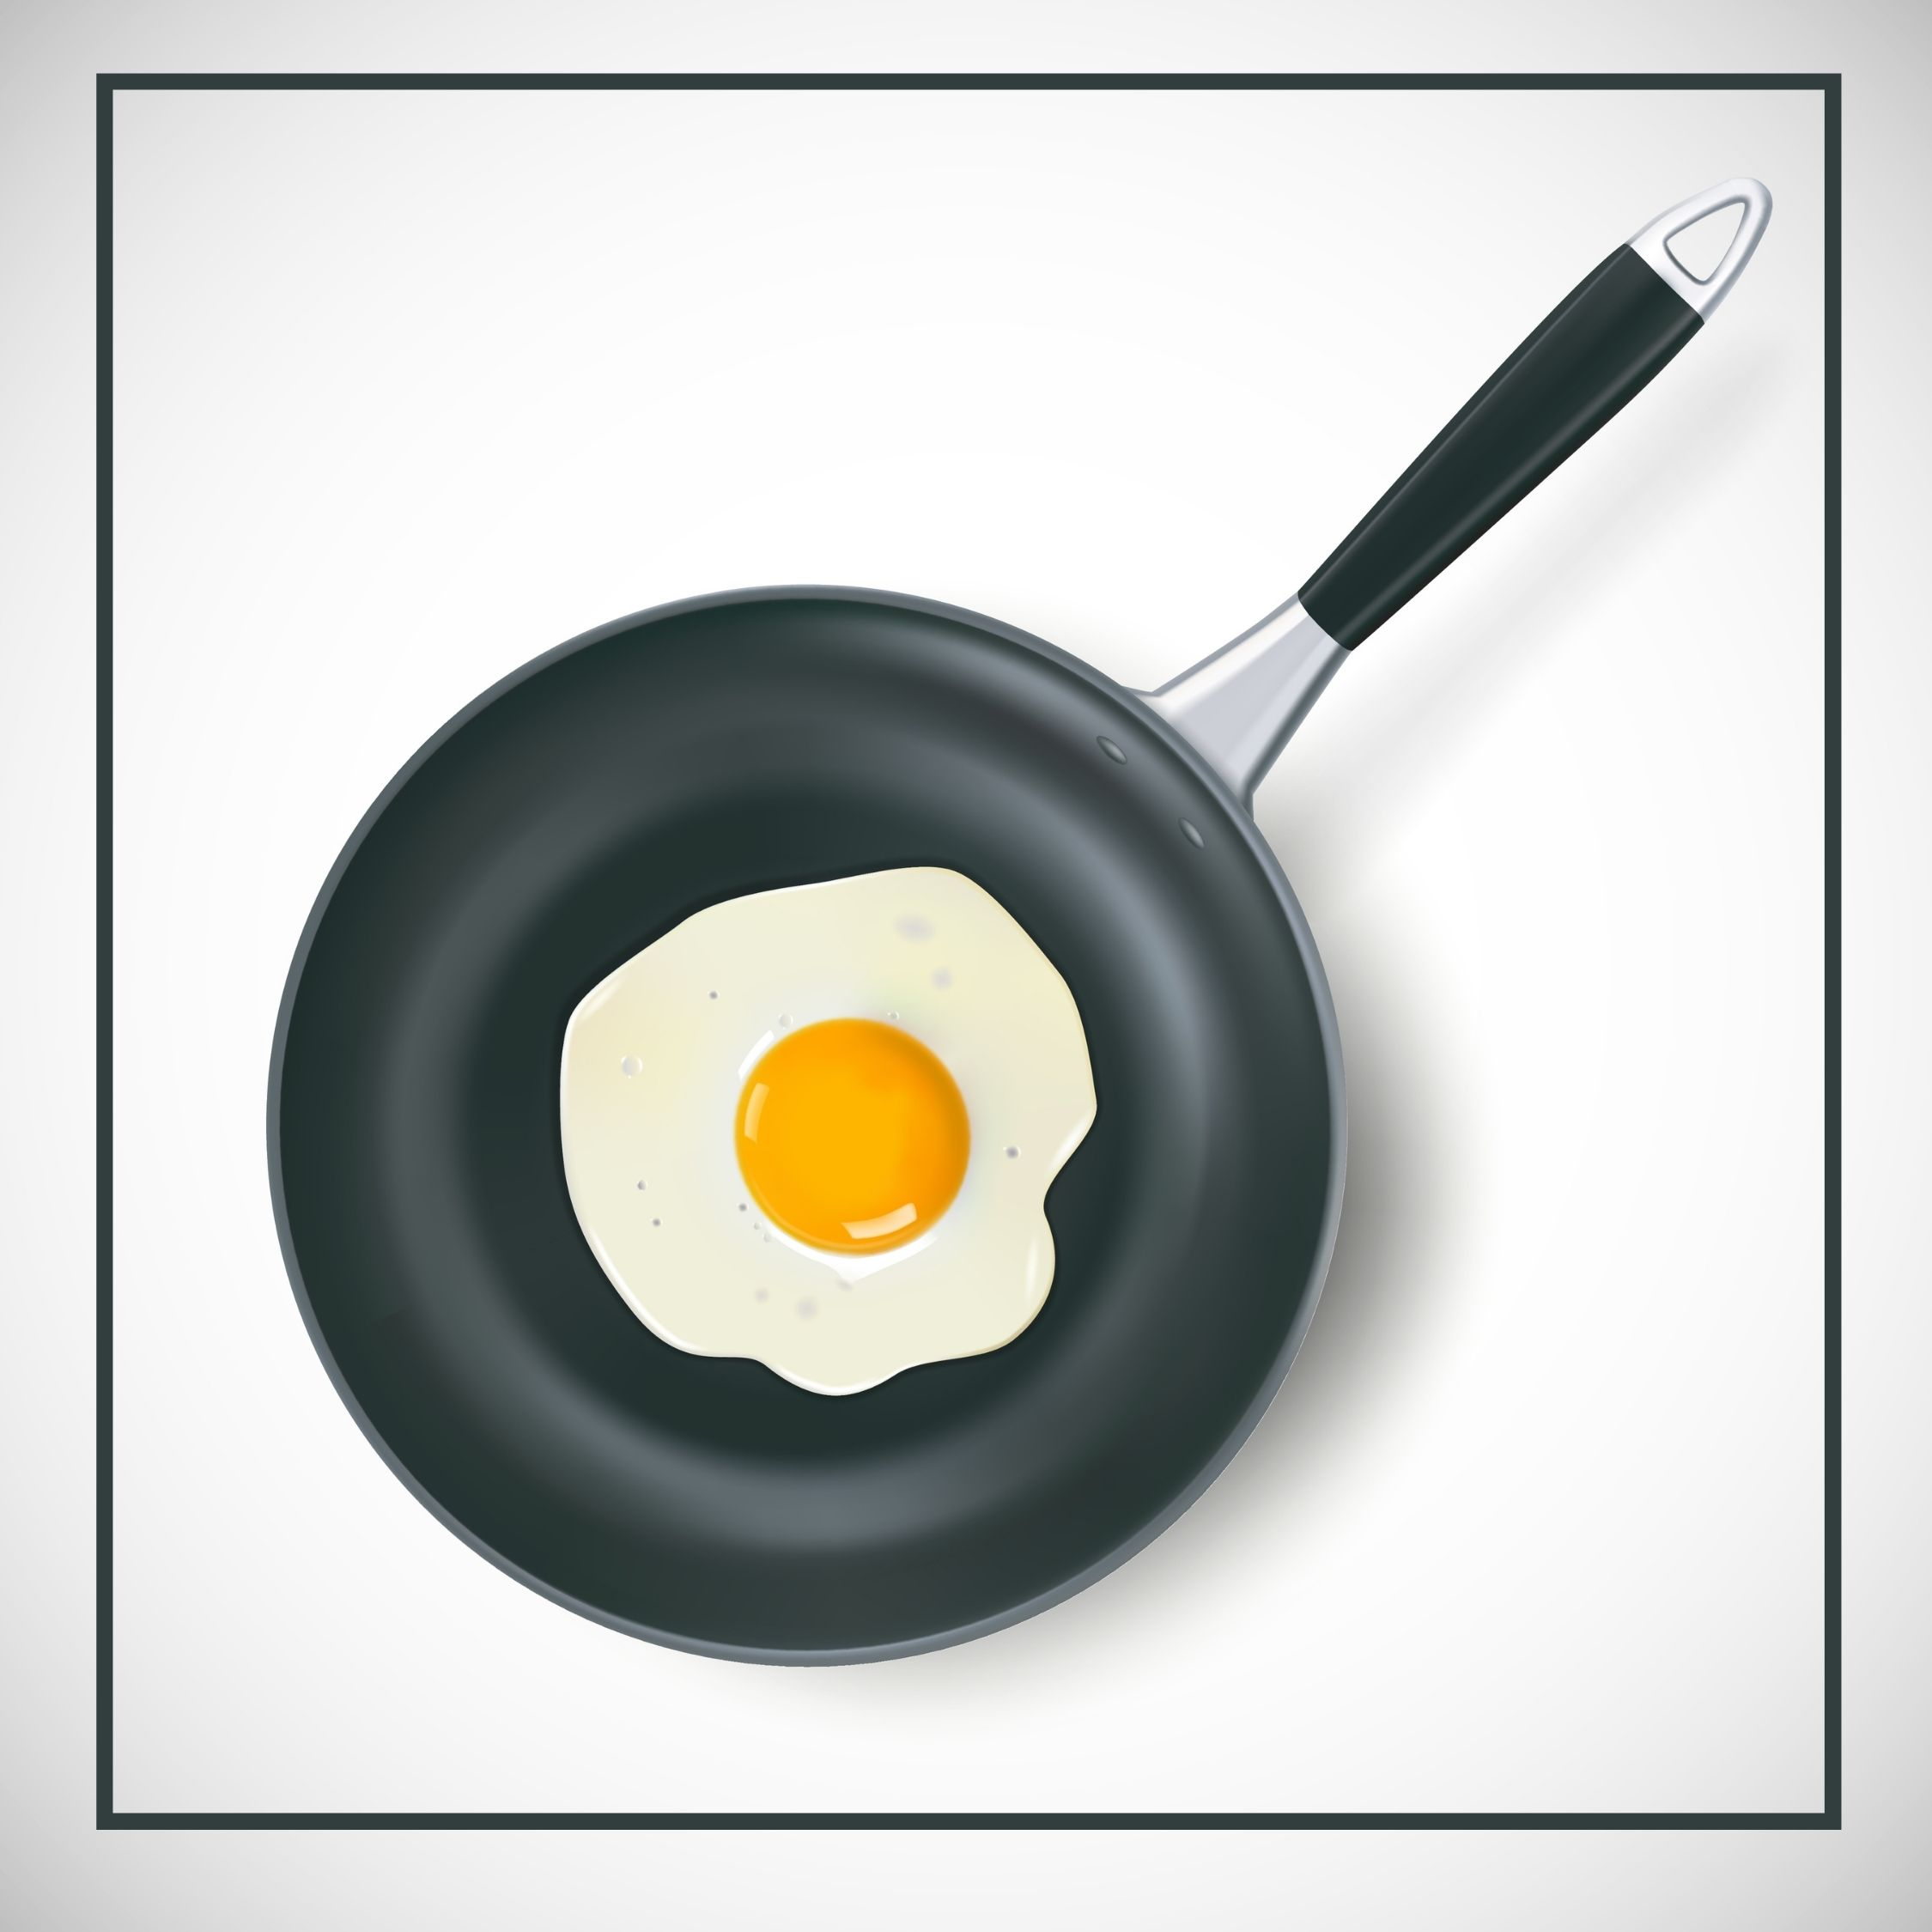 Best-Frying-Pans-Australia-Reviews-By-Pickrey